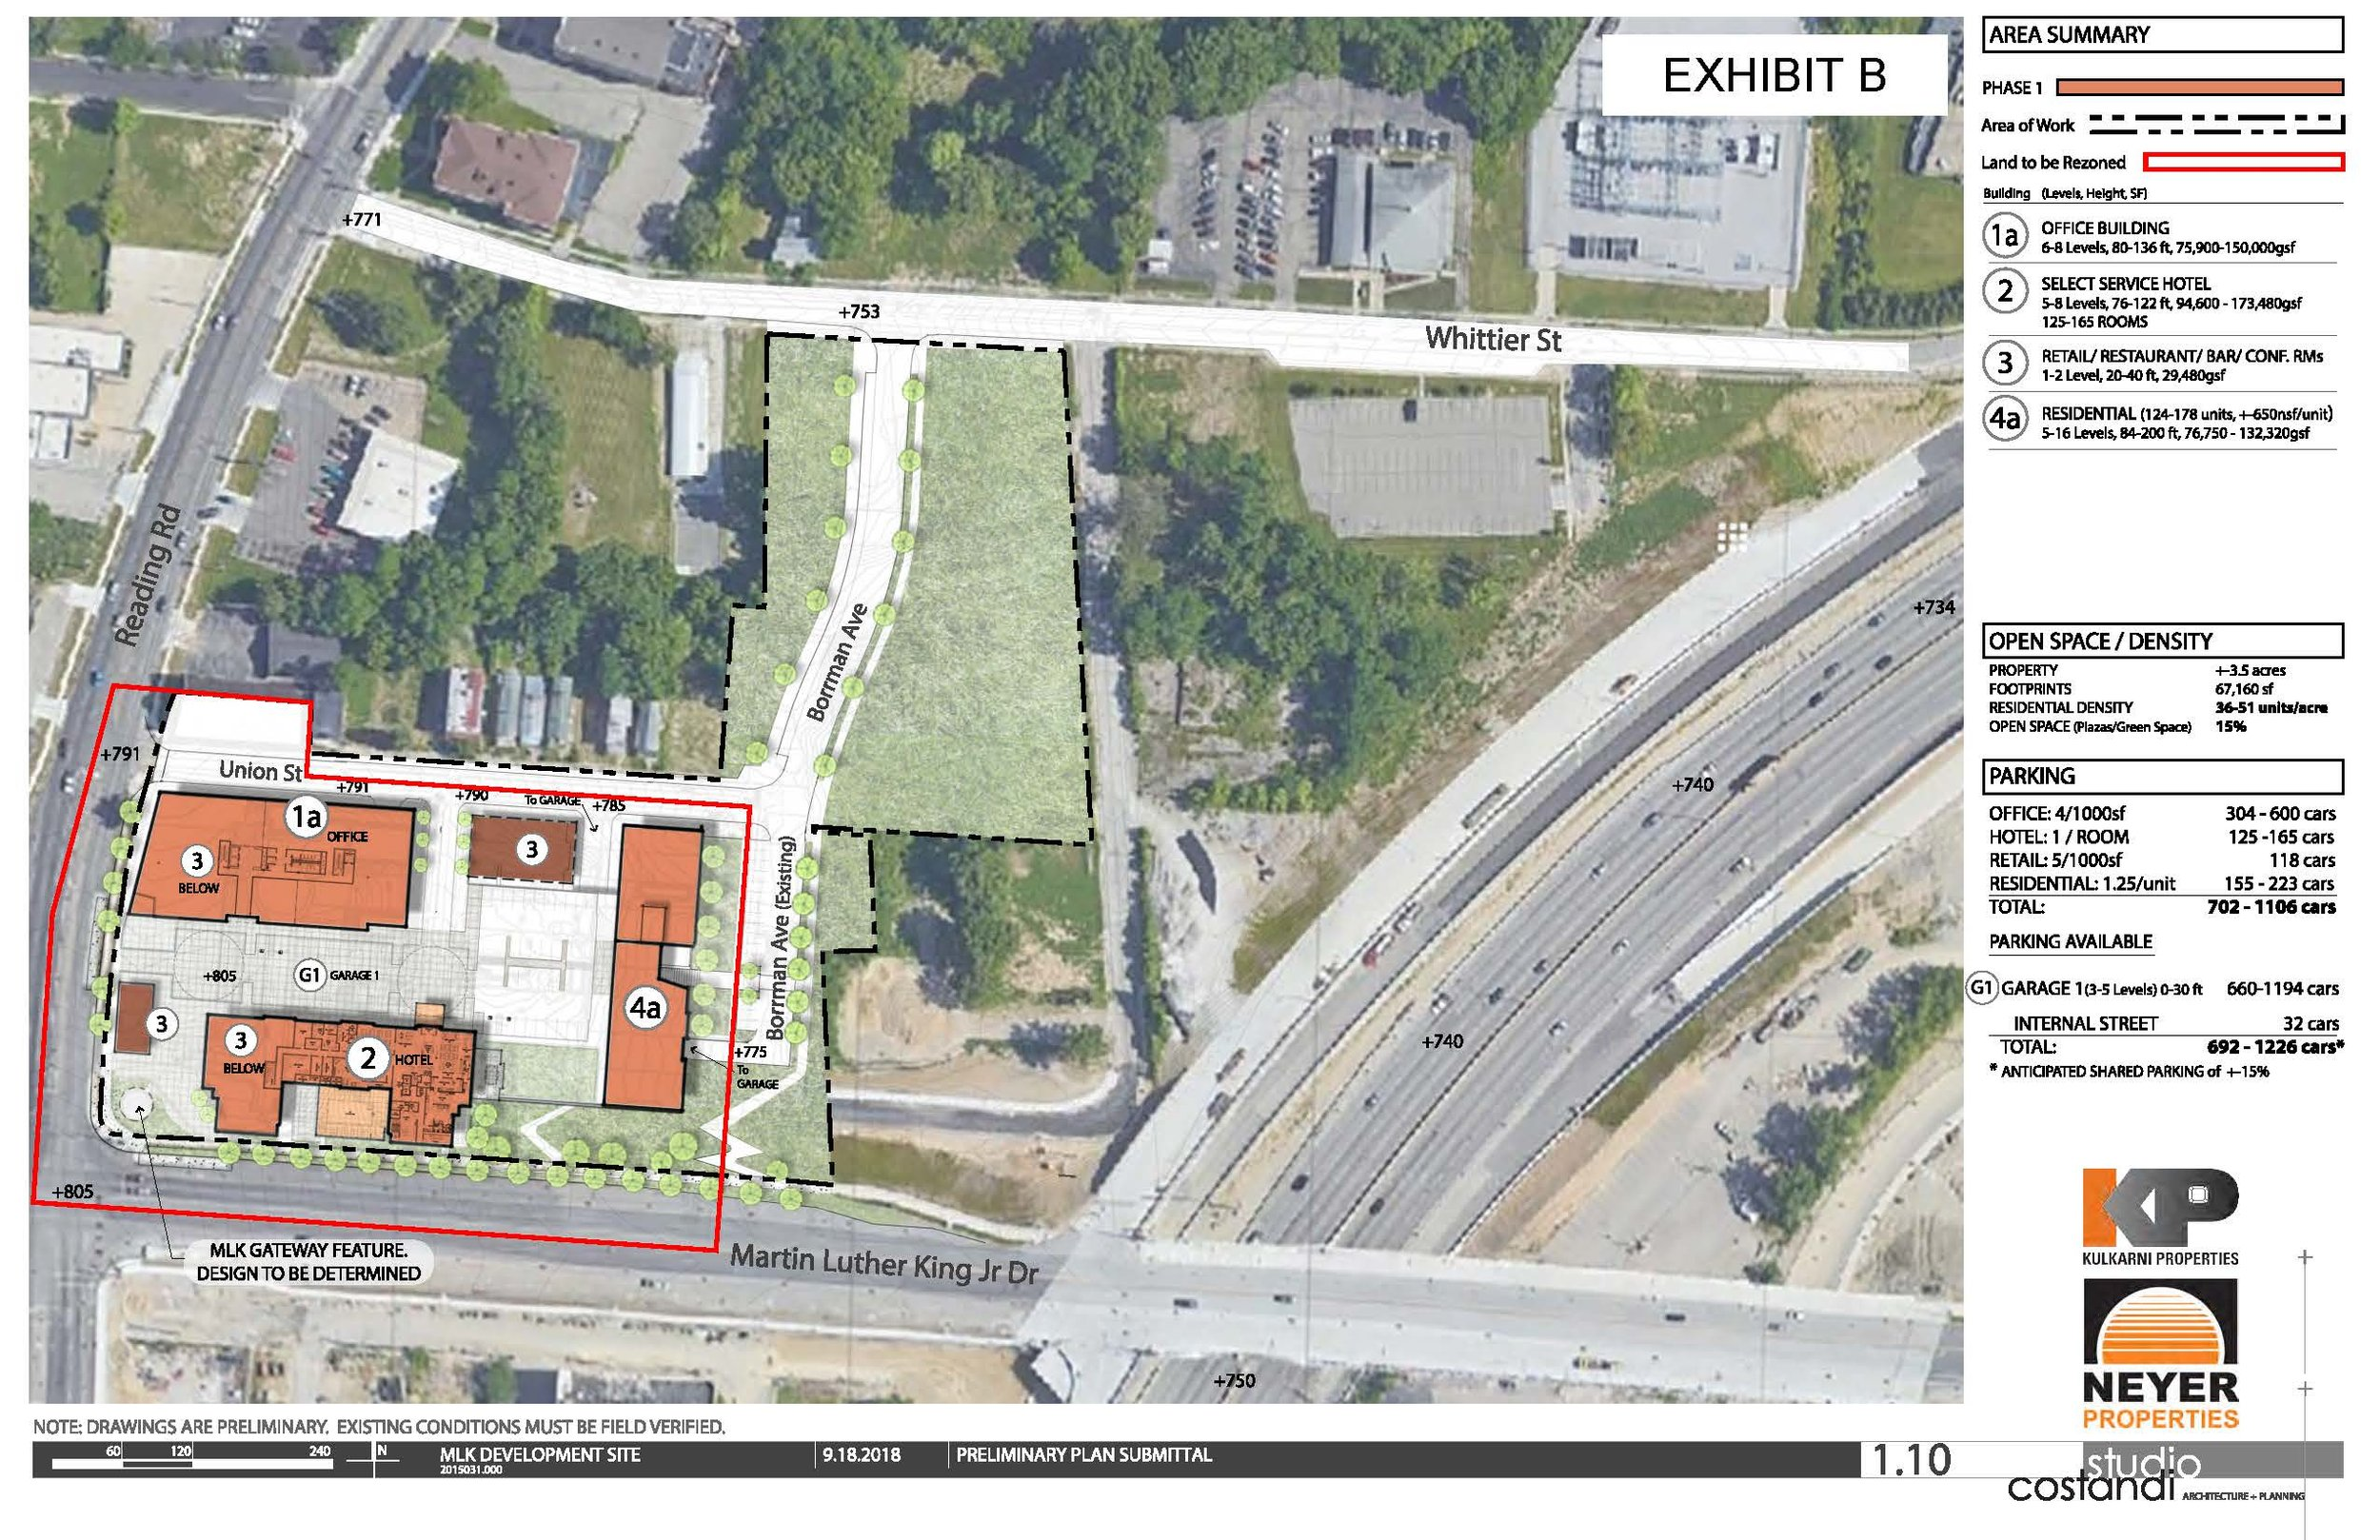 Exhibit B - NE Quad Update zoning plan (002).jpg